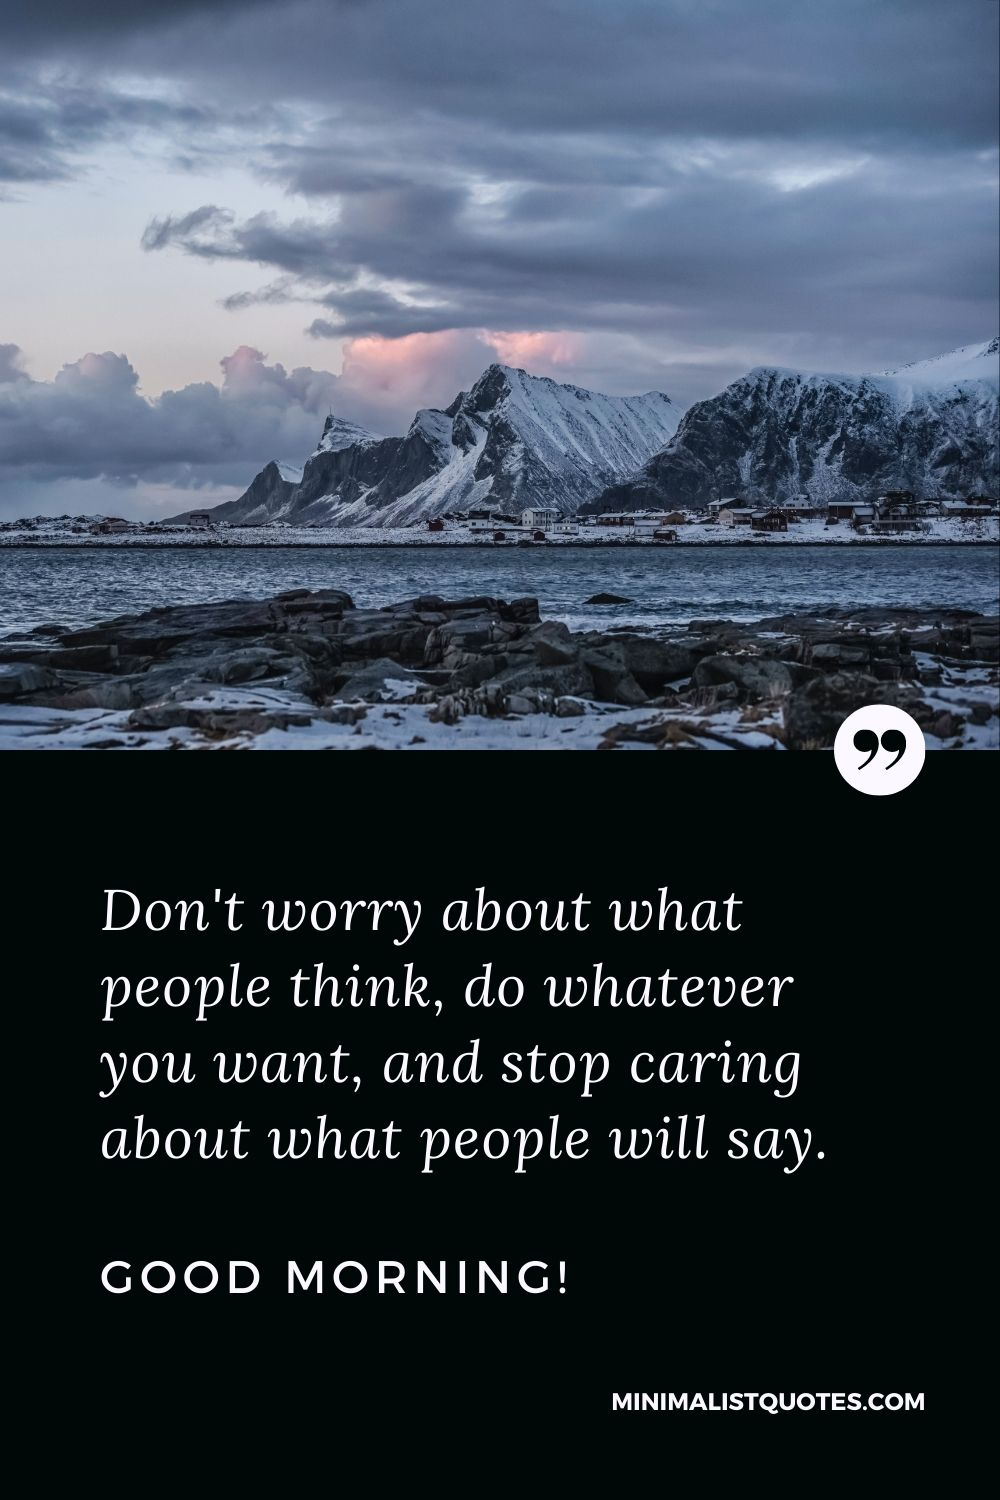 Good Morning Quote, Wish & Message With Image: Don't worry about what people think, do whatever you want, and stop caring about what people will say. Good Morning!